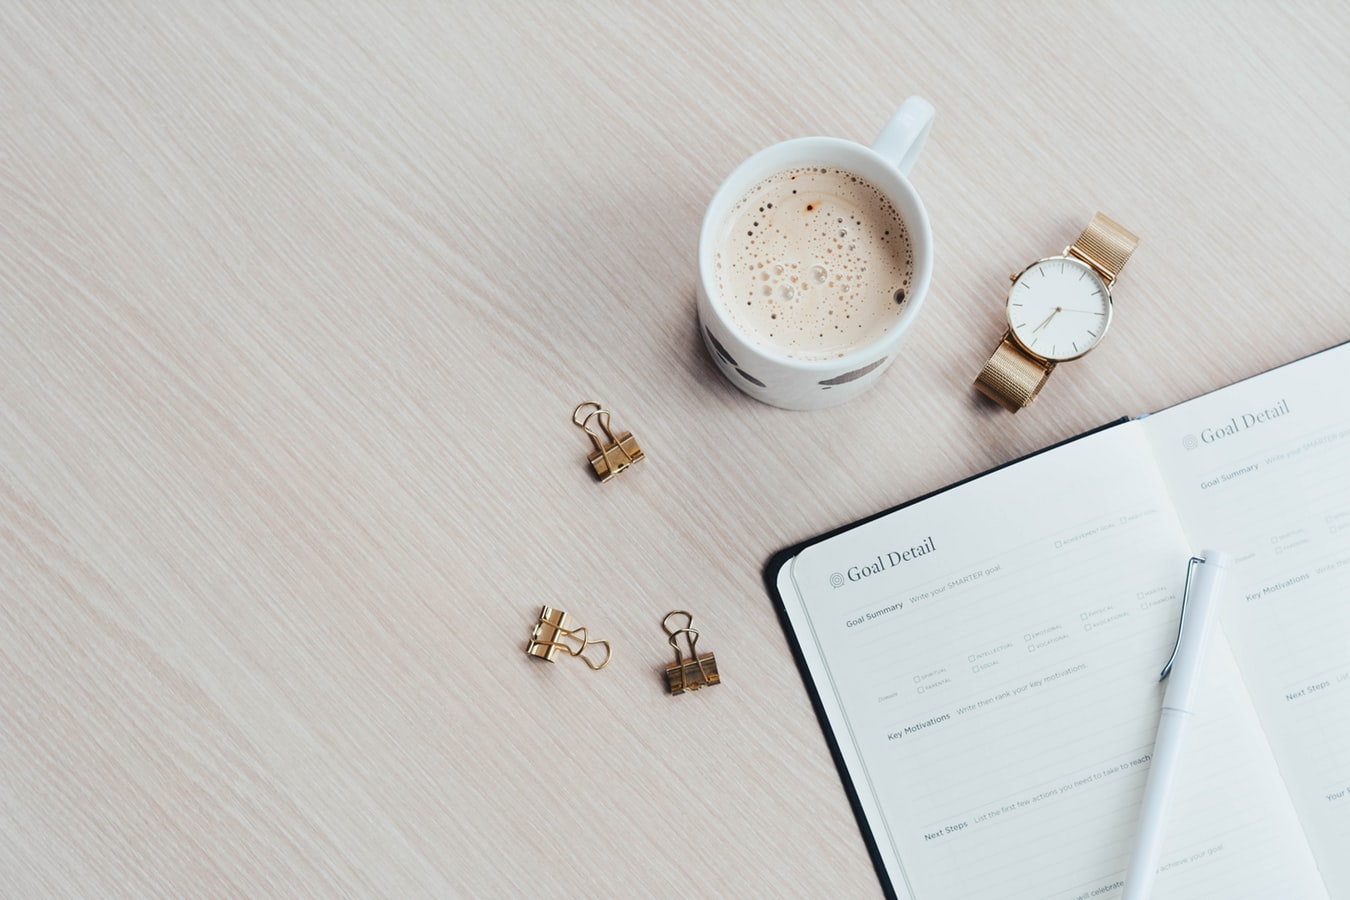 coffee on a table with a planner next to it, how to increase productivity at home